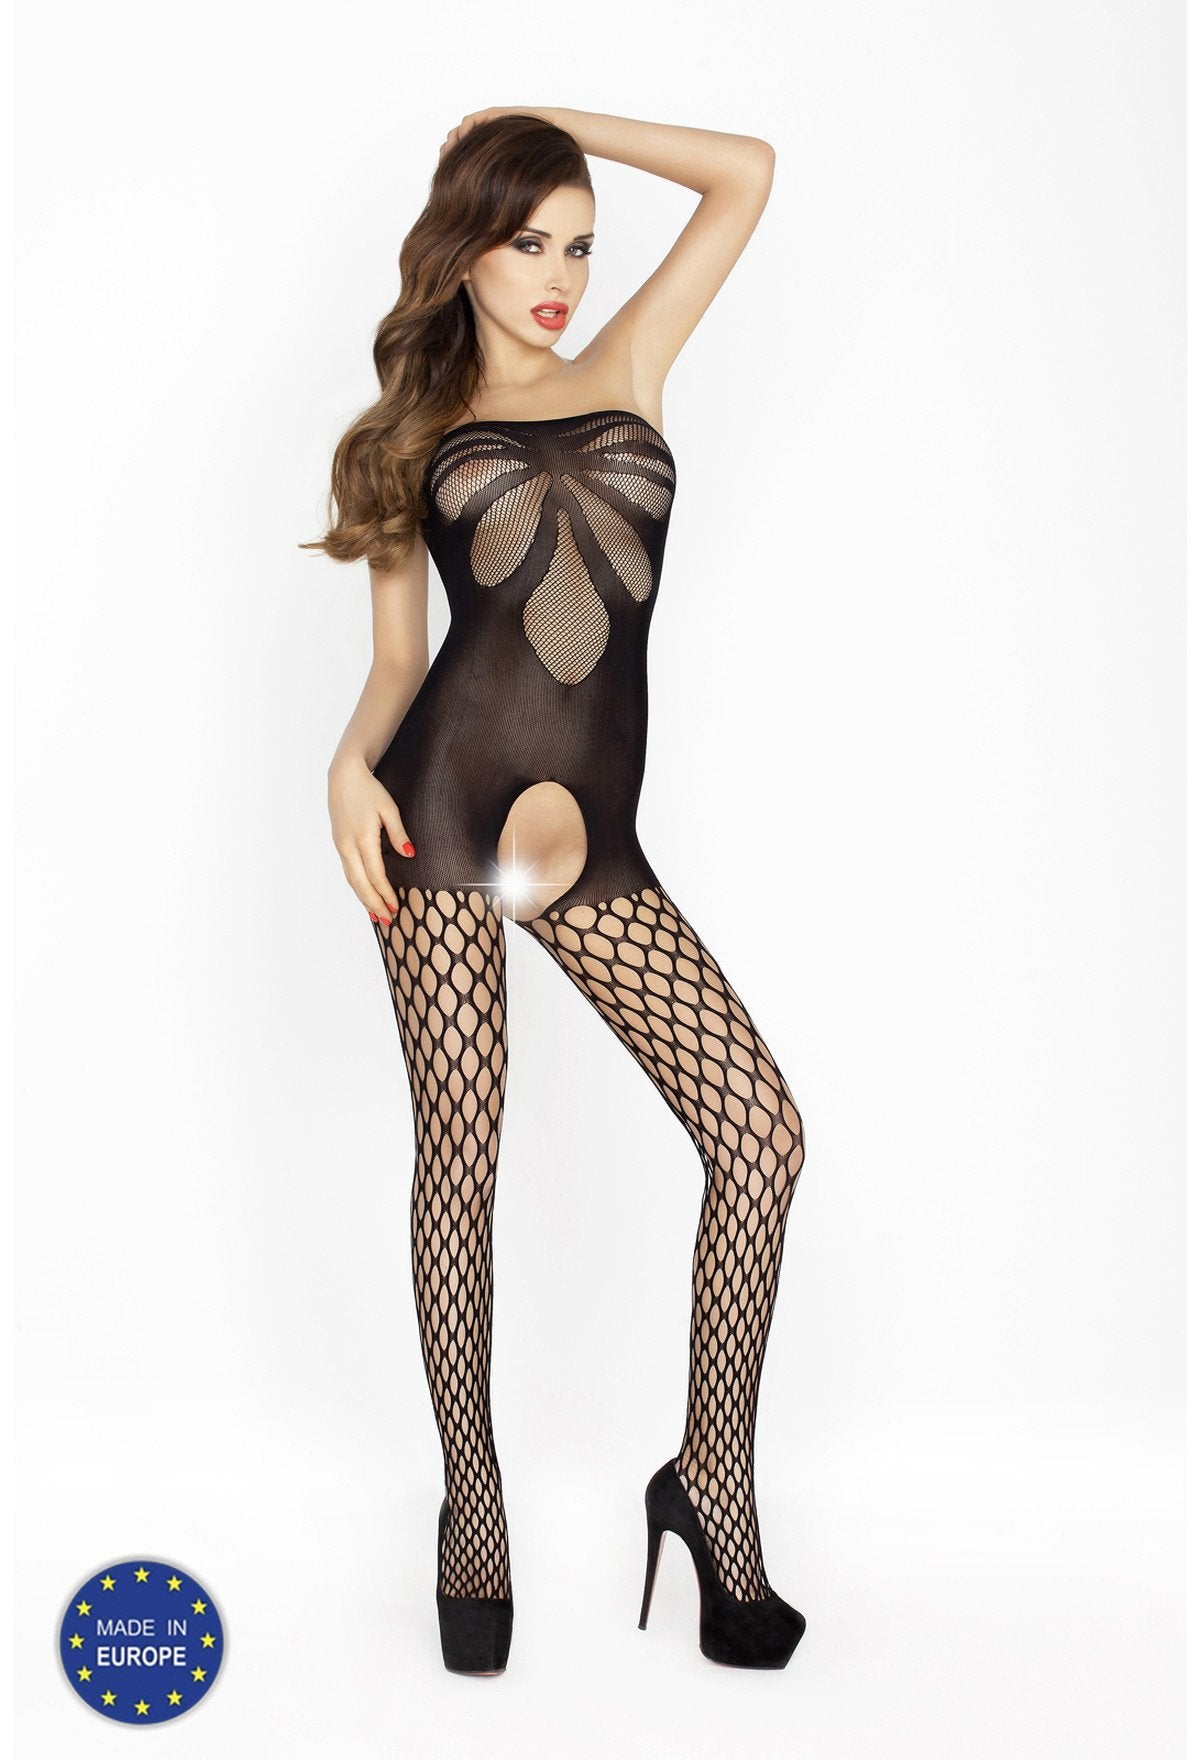 Passion BS021 Bodystocking Black